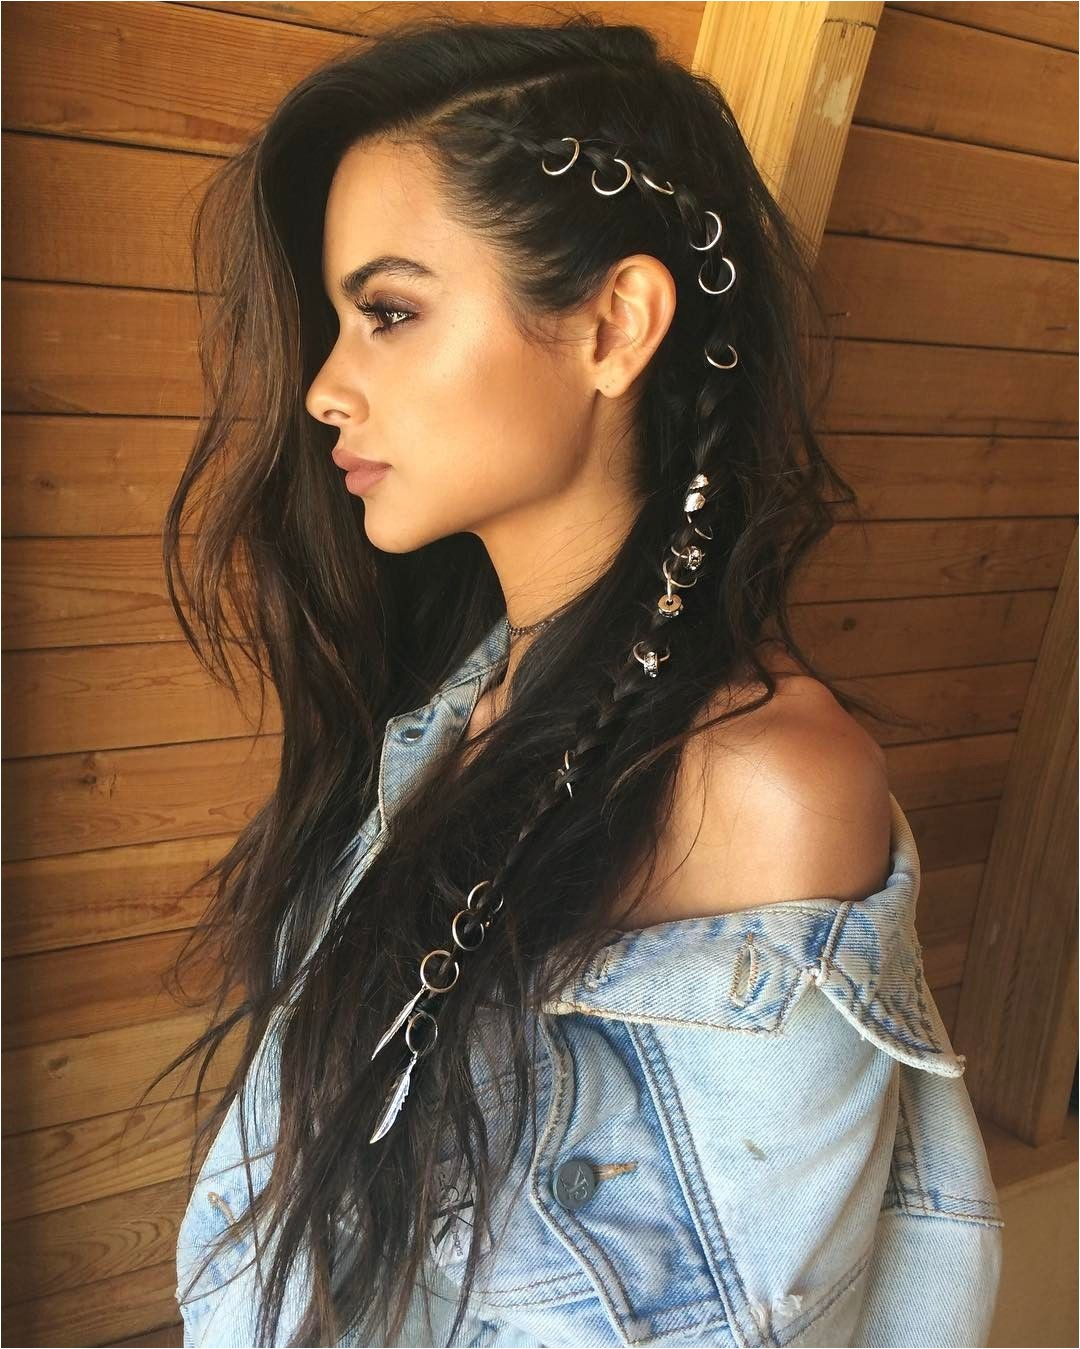 The long hair style is hot which is why lots of women choose to use prolonged free flowing hairs rather than the popular short